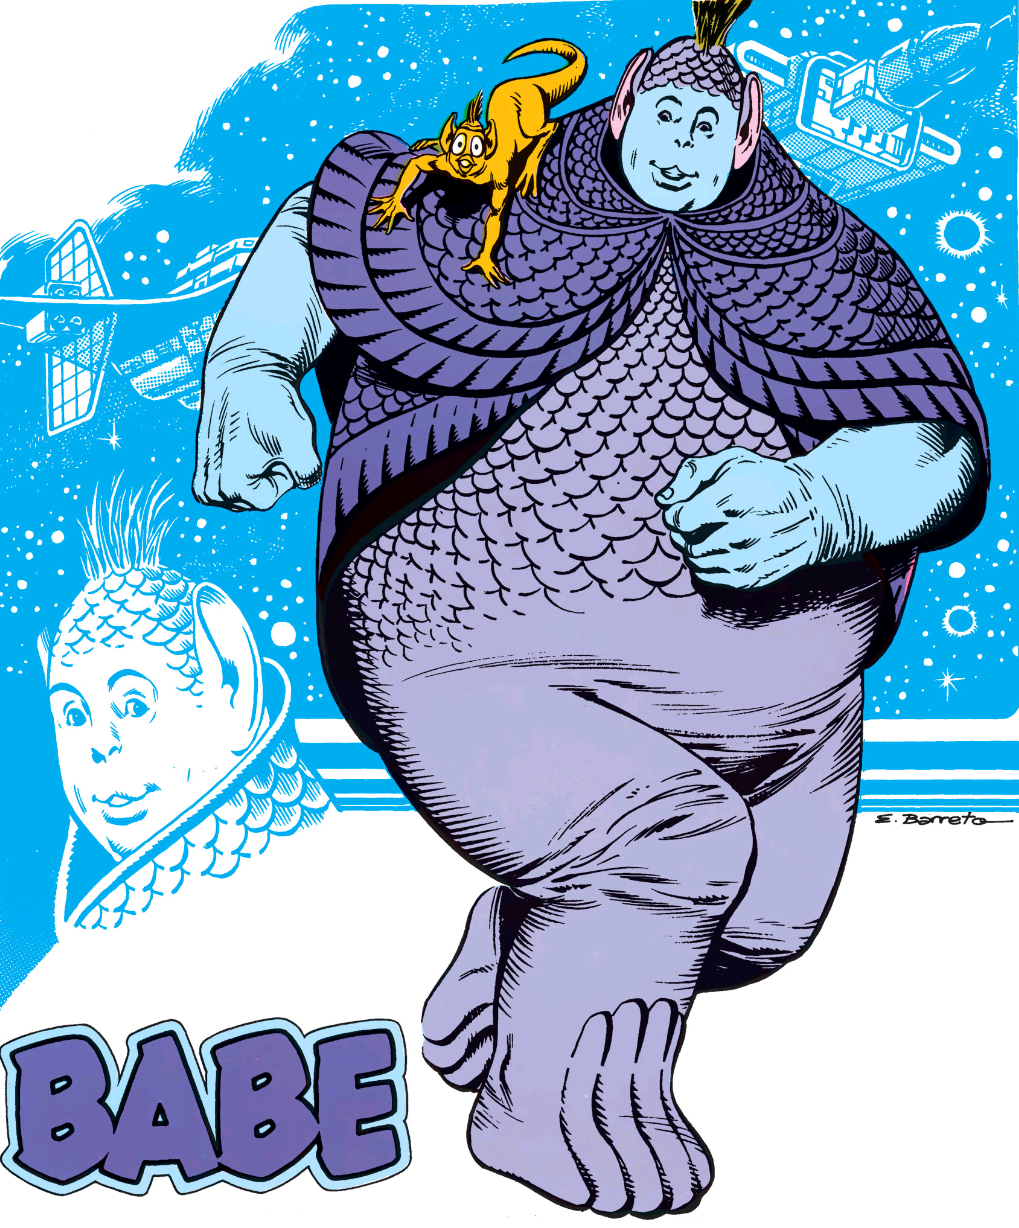 Babe (Atari Force)